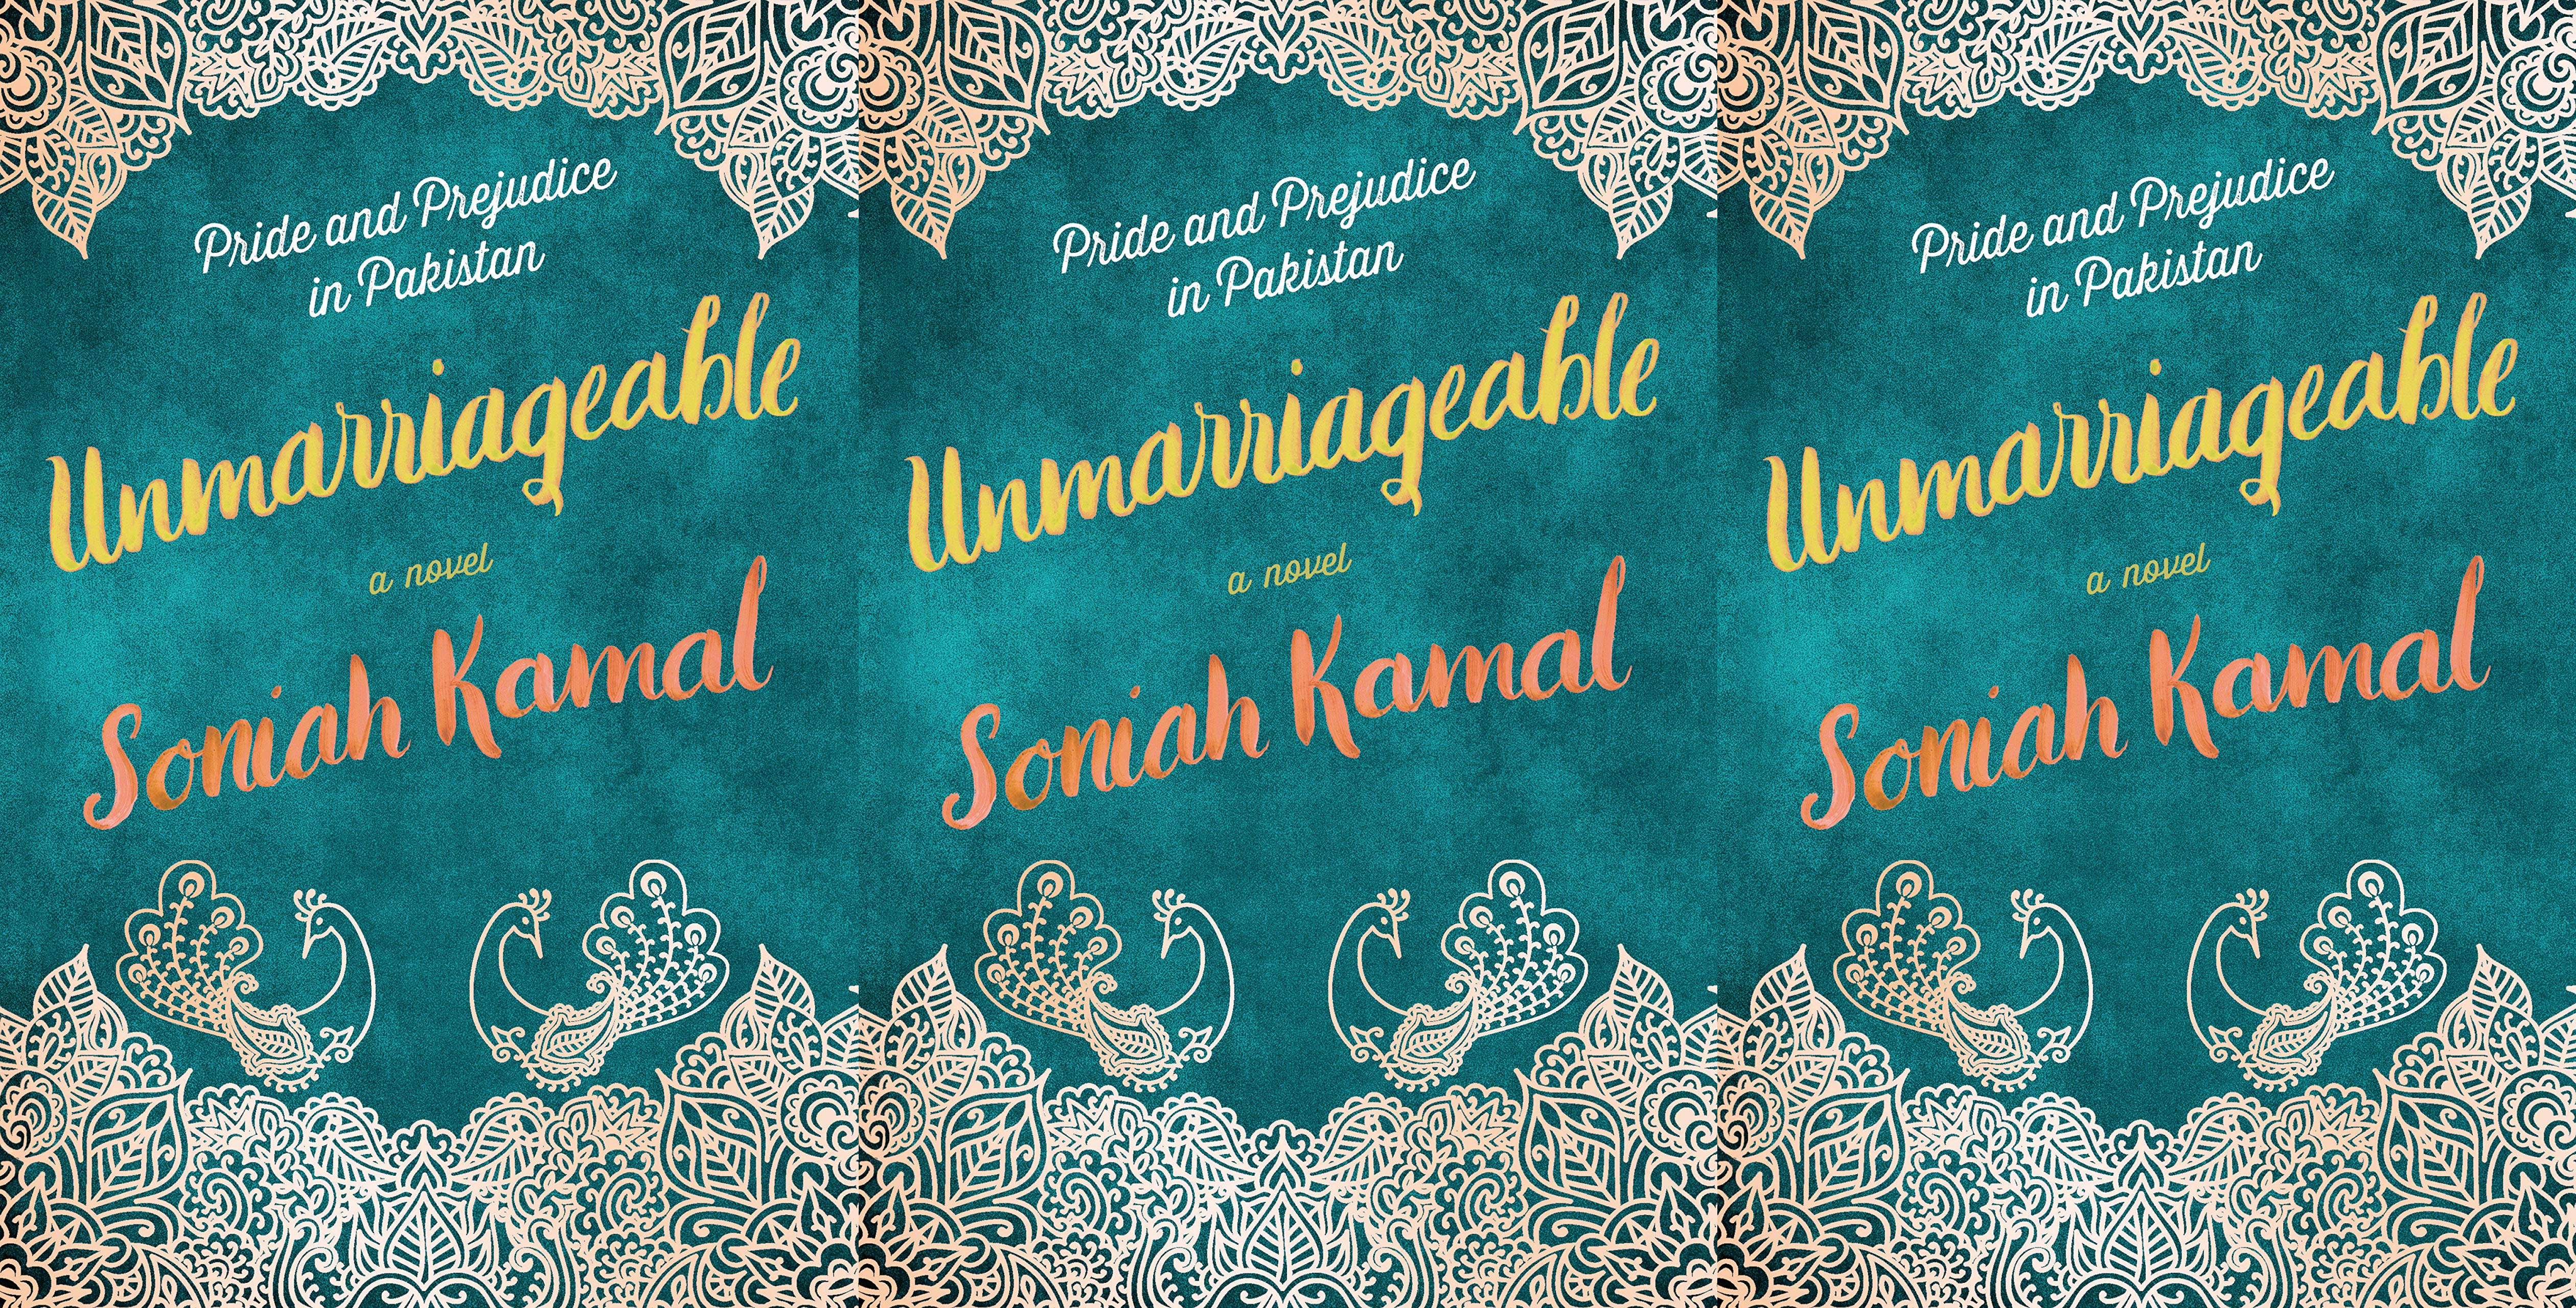 books inspired by jane austen, unmarriageable by soniah kamal, books